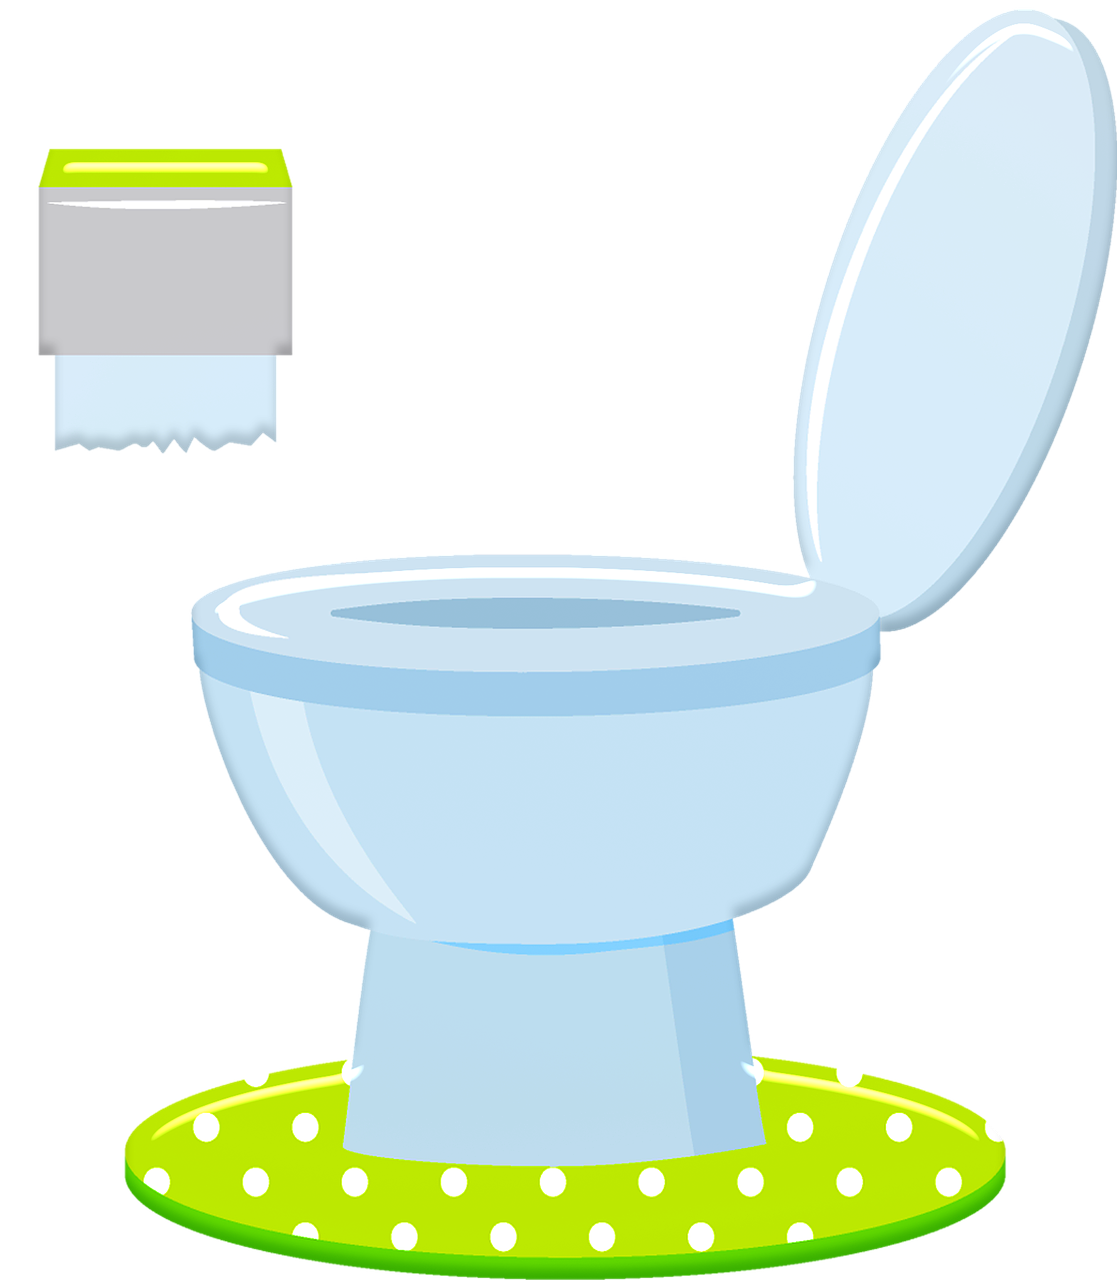 toilet-3636247_1280.png